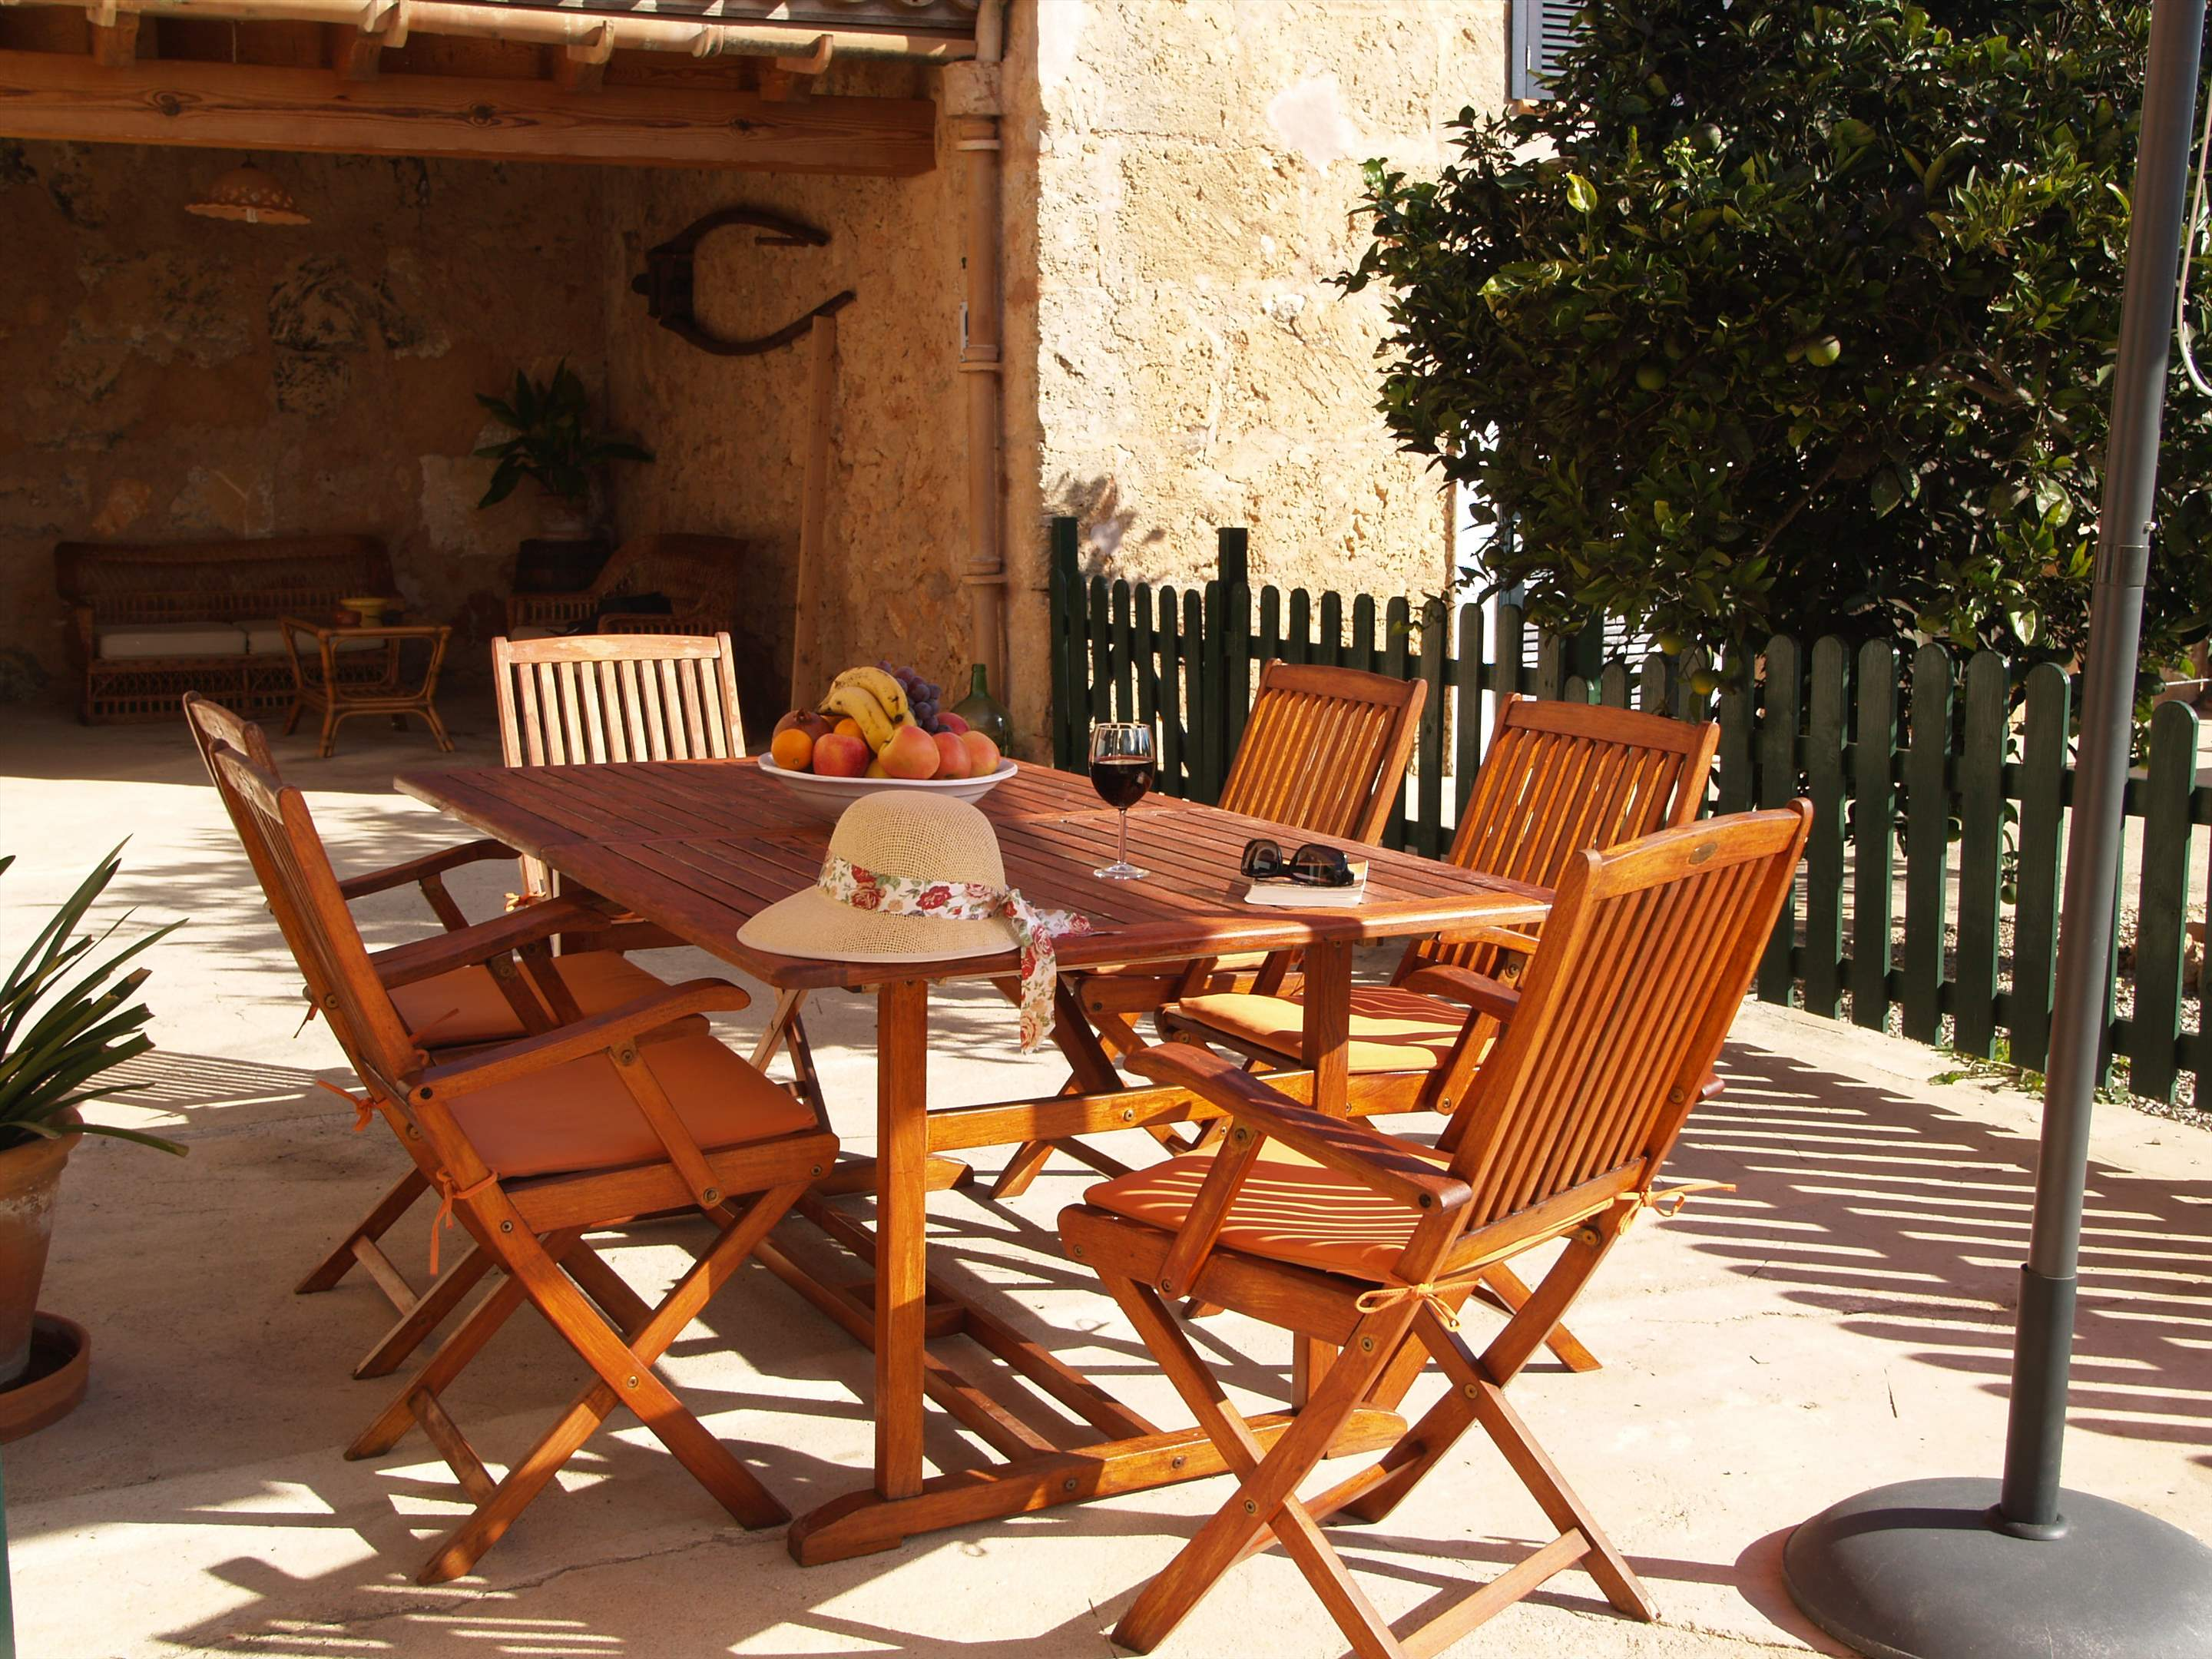 Son Rengo, 3 bedroom villa in Campos & Sa Rapita , Majorca Photo #3